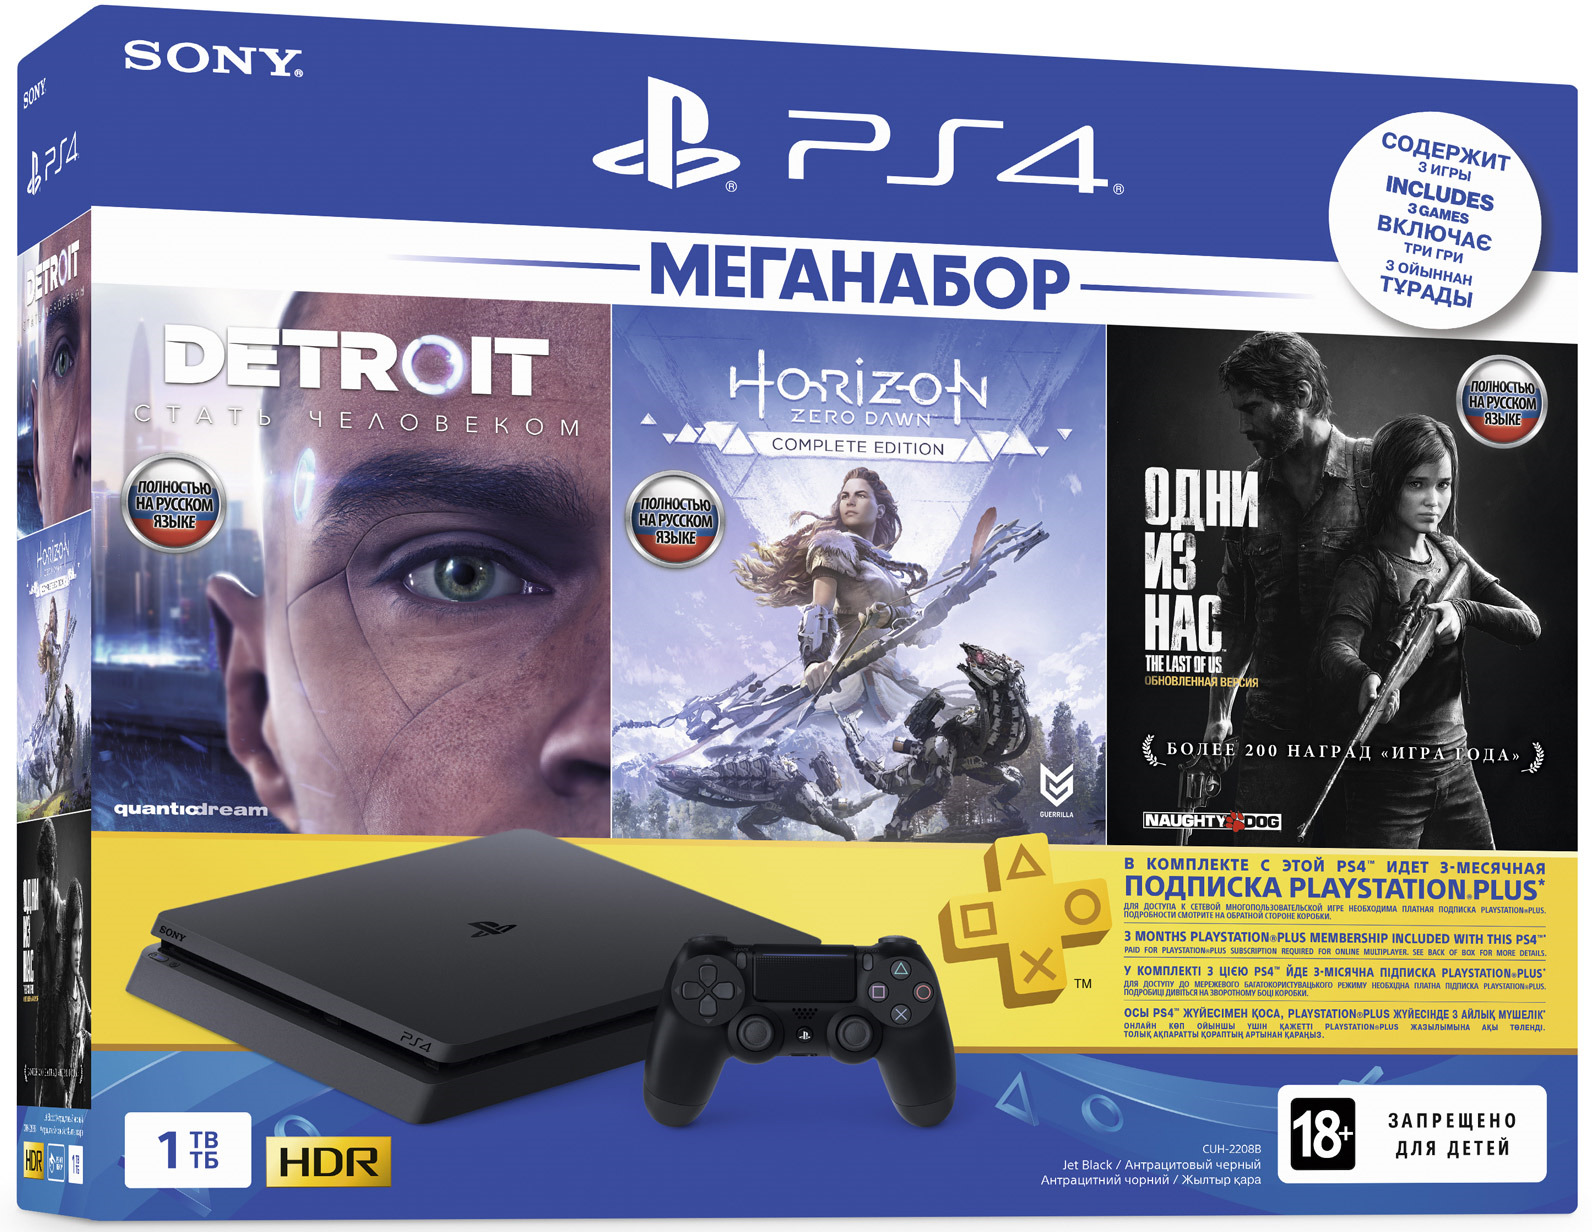 Игровая приставка Sony PlayStation 4 Slim (1TB), черный + Horizon Zero Dawn: Complete Edition + Одни из Нас + Detroit: Стать человеком игровая консоль sony playstation 4 slim 1tb black cuh 2208b gran turismo sport god of war horizon zero dawn ce psn 3 месяца